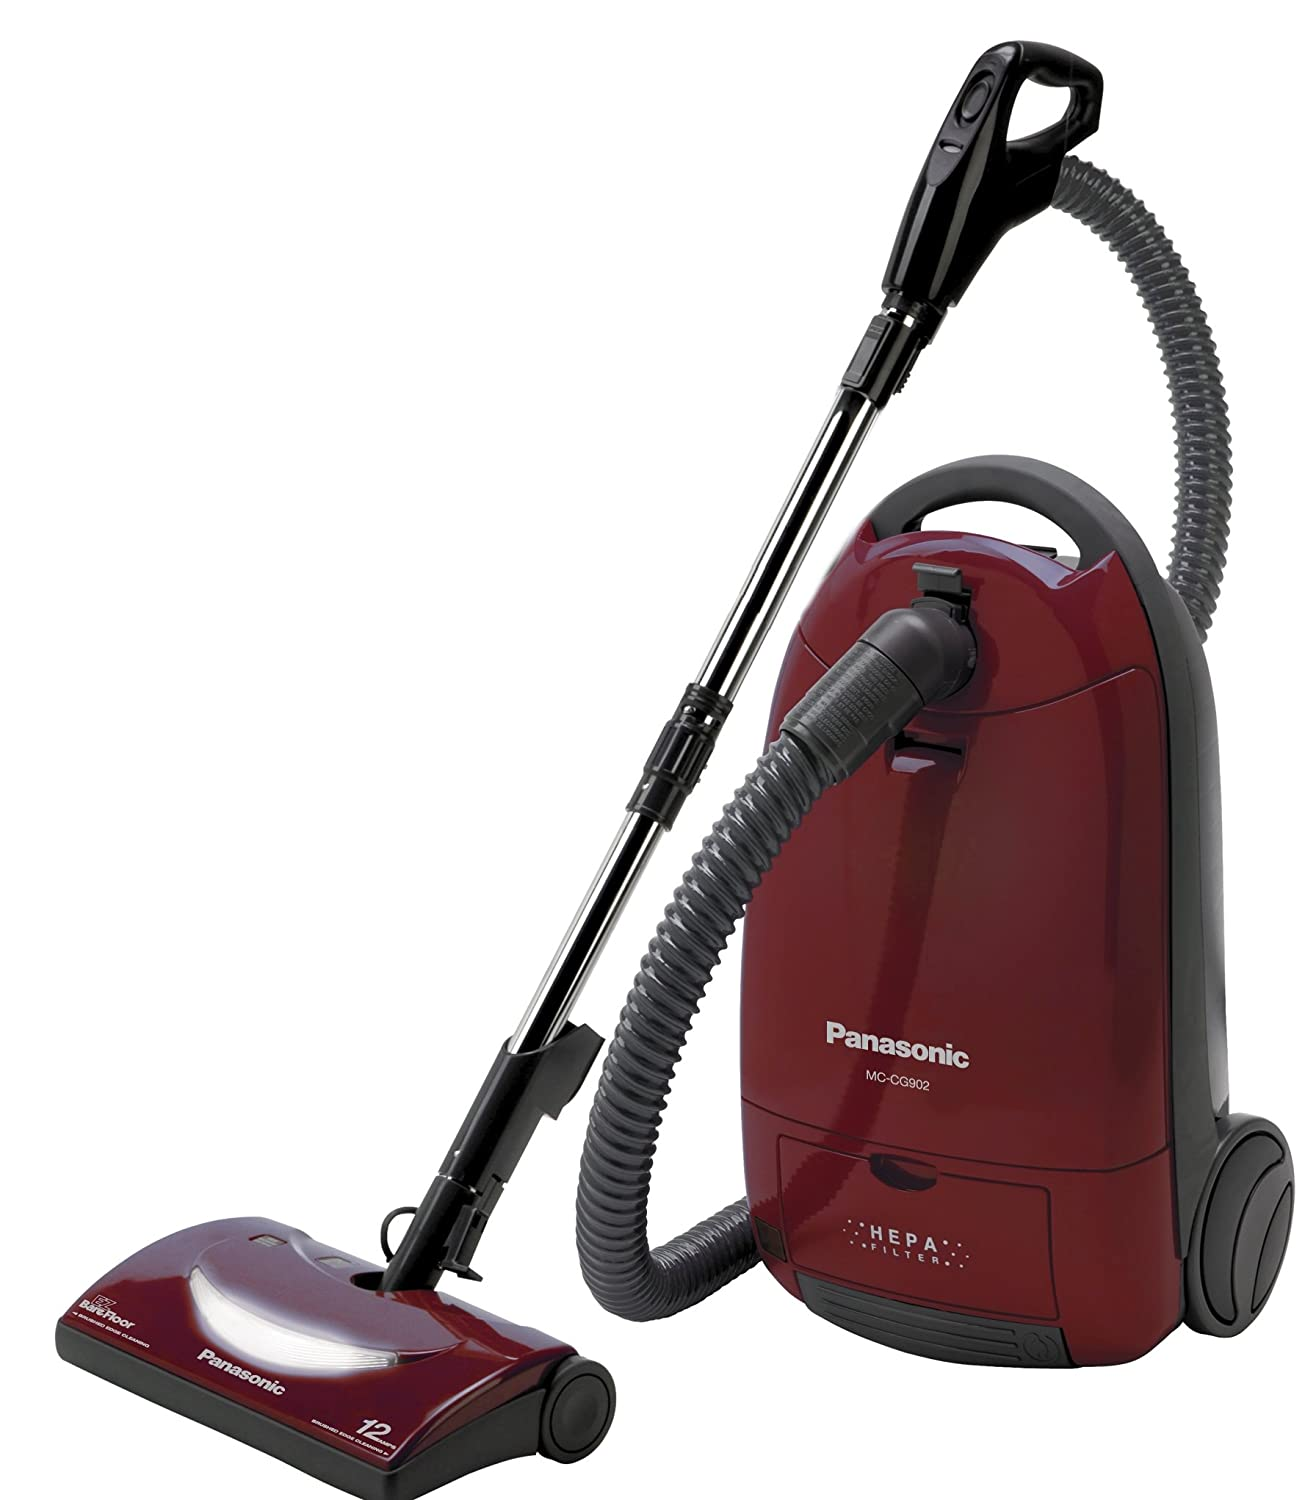 Top 10 Best Canister Vacuum Cleaner (2020 Reviews & Buying Guide) 6